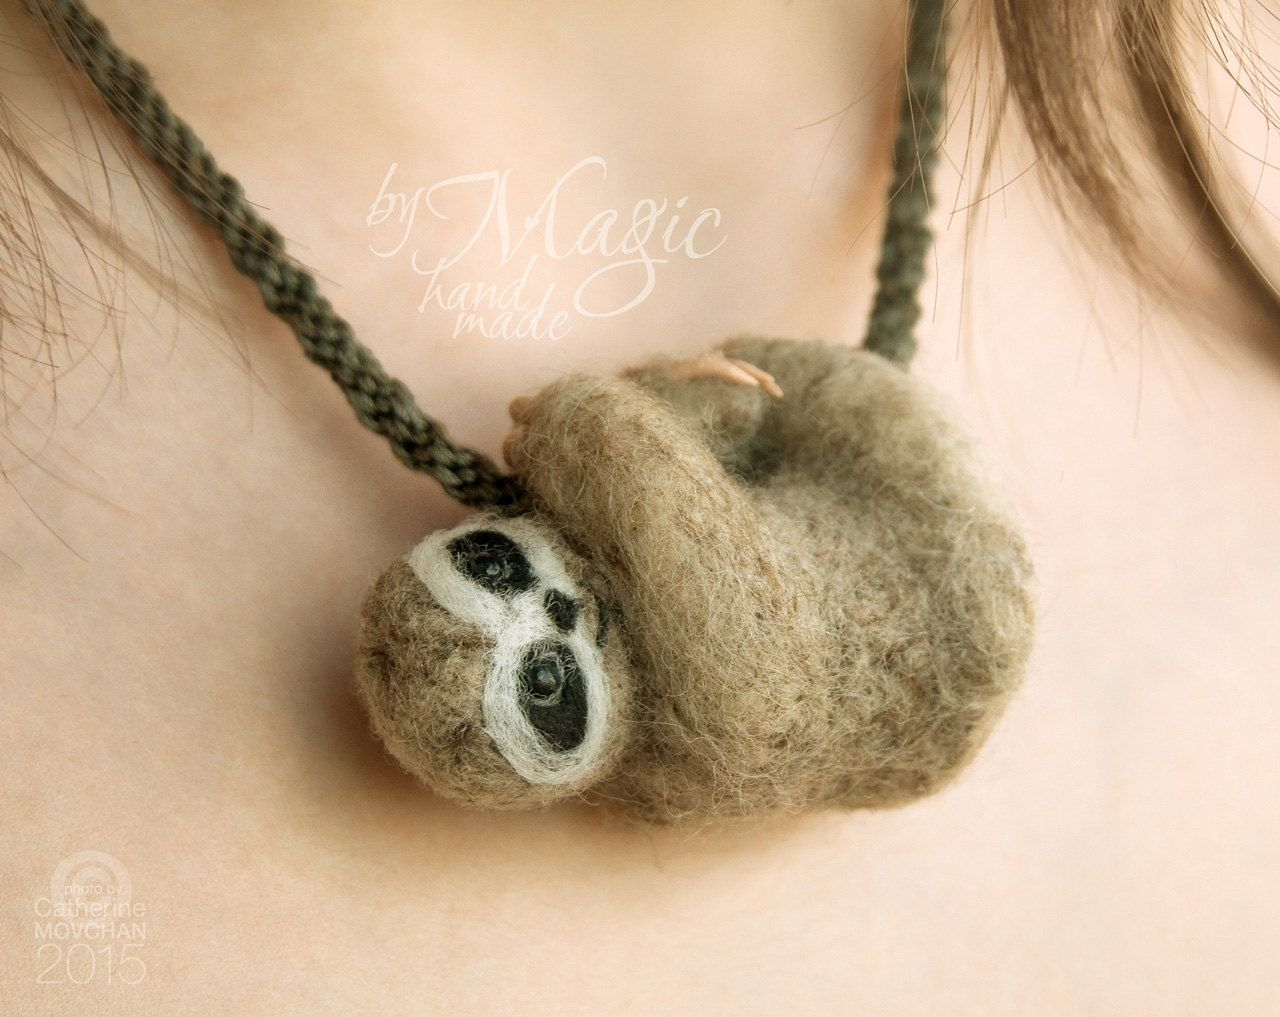 figurine jewelry baby silver with chain sloth lampwork necklace sculpture pin glass miniature bead pendant charm